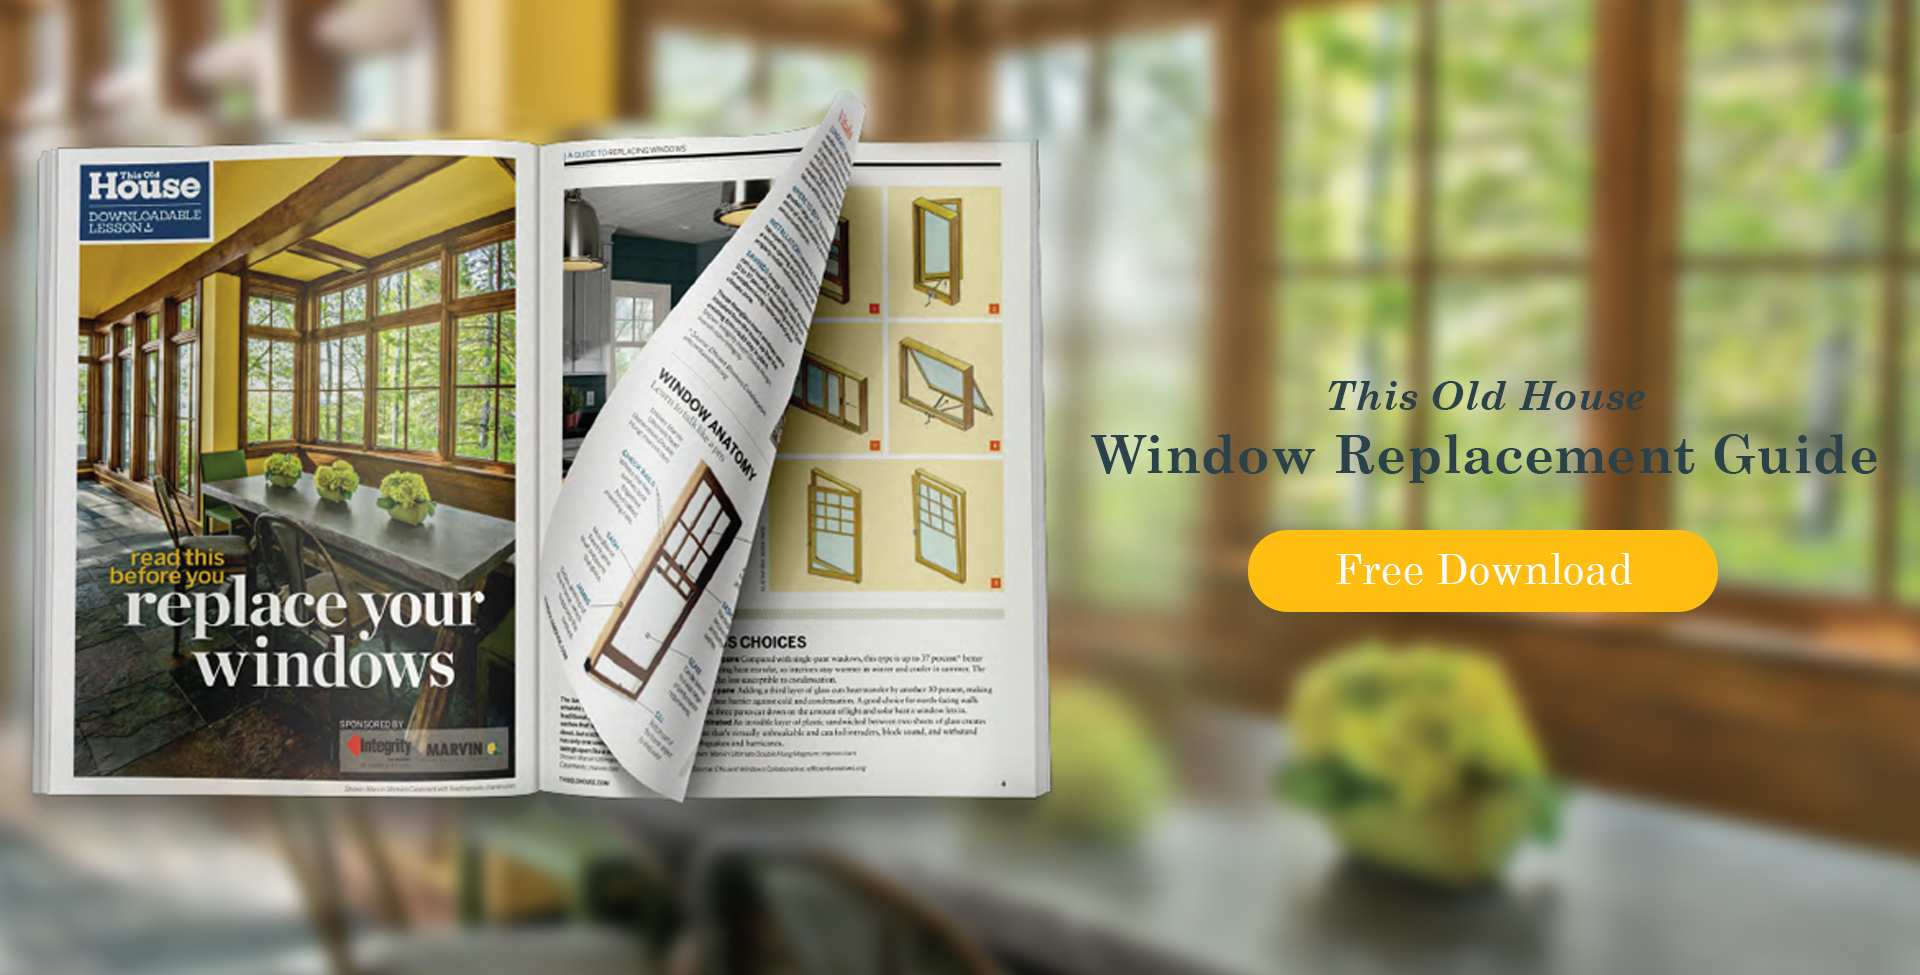 the this old house pdf download